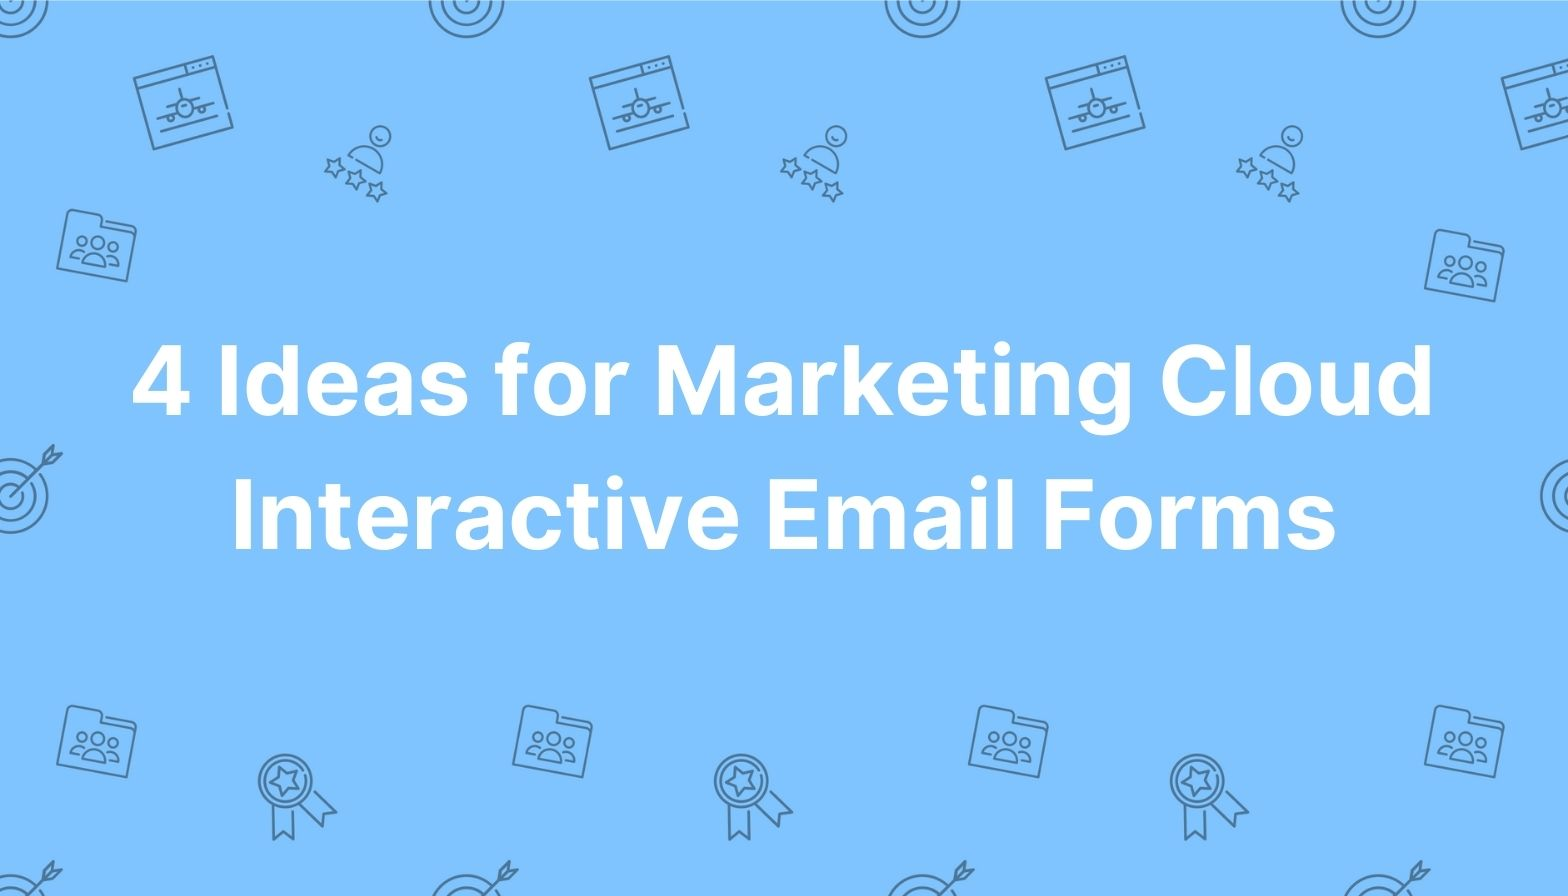 Feature image: 4 Ideas for Marketing Cloud Interactive Email Forms